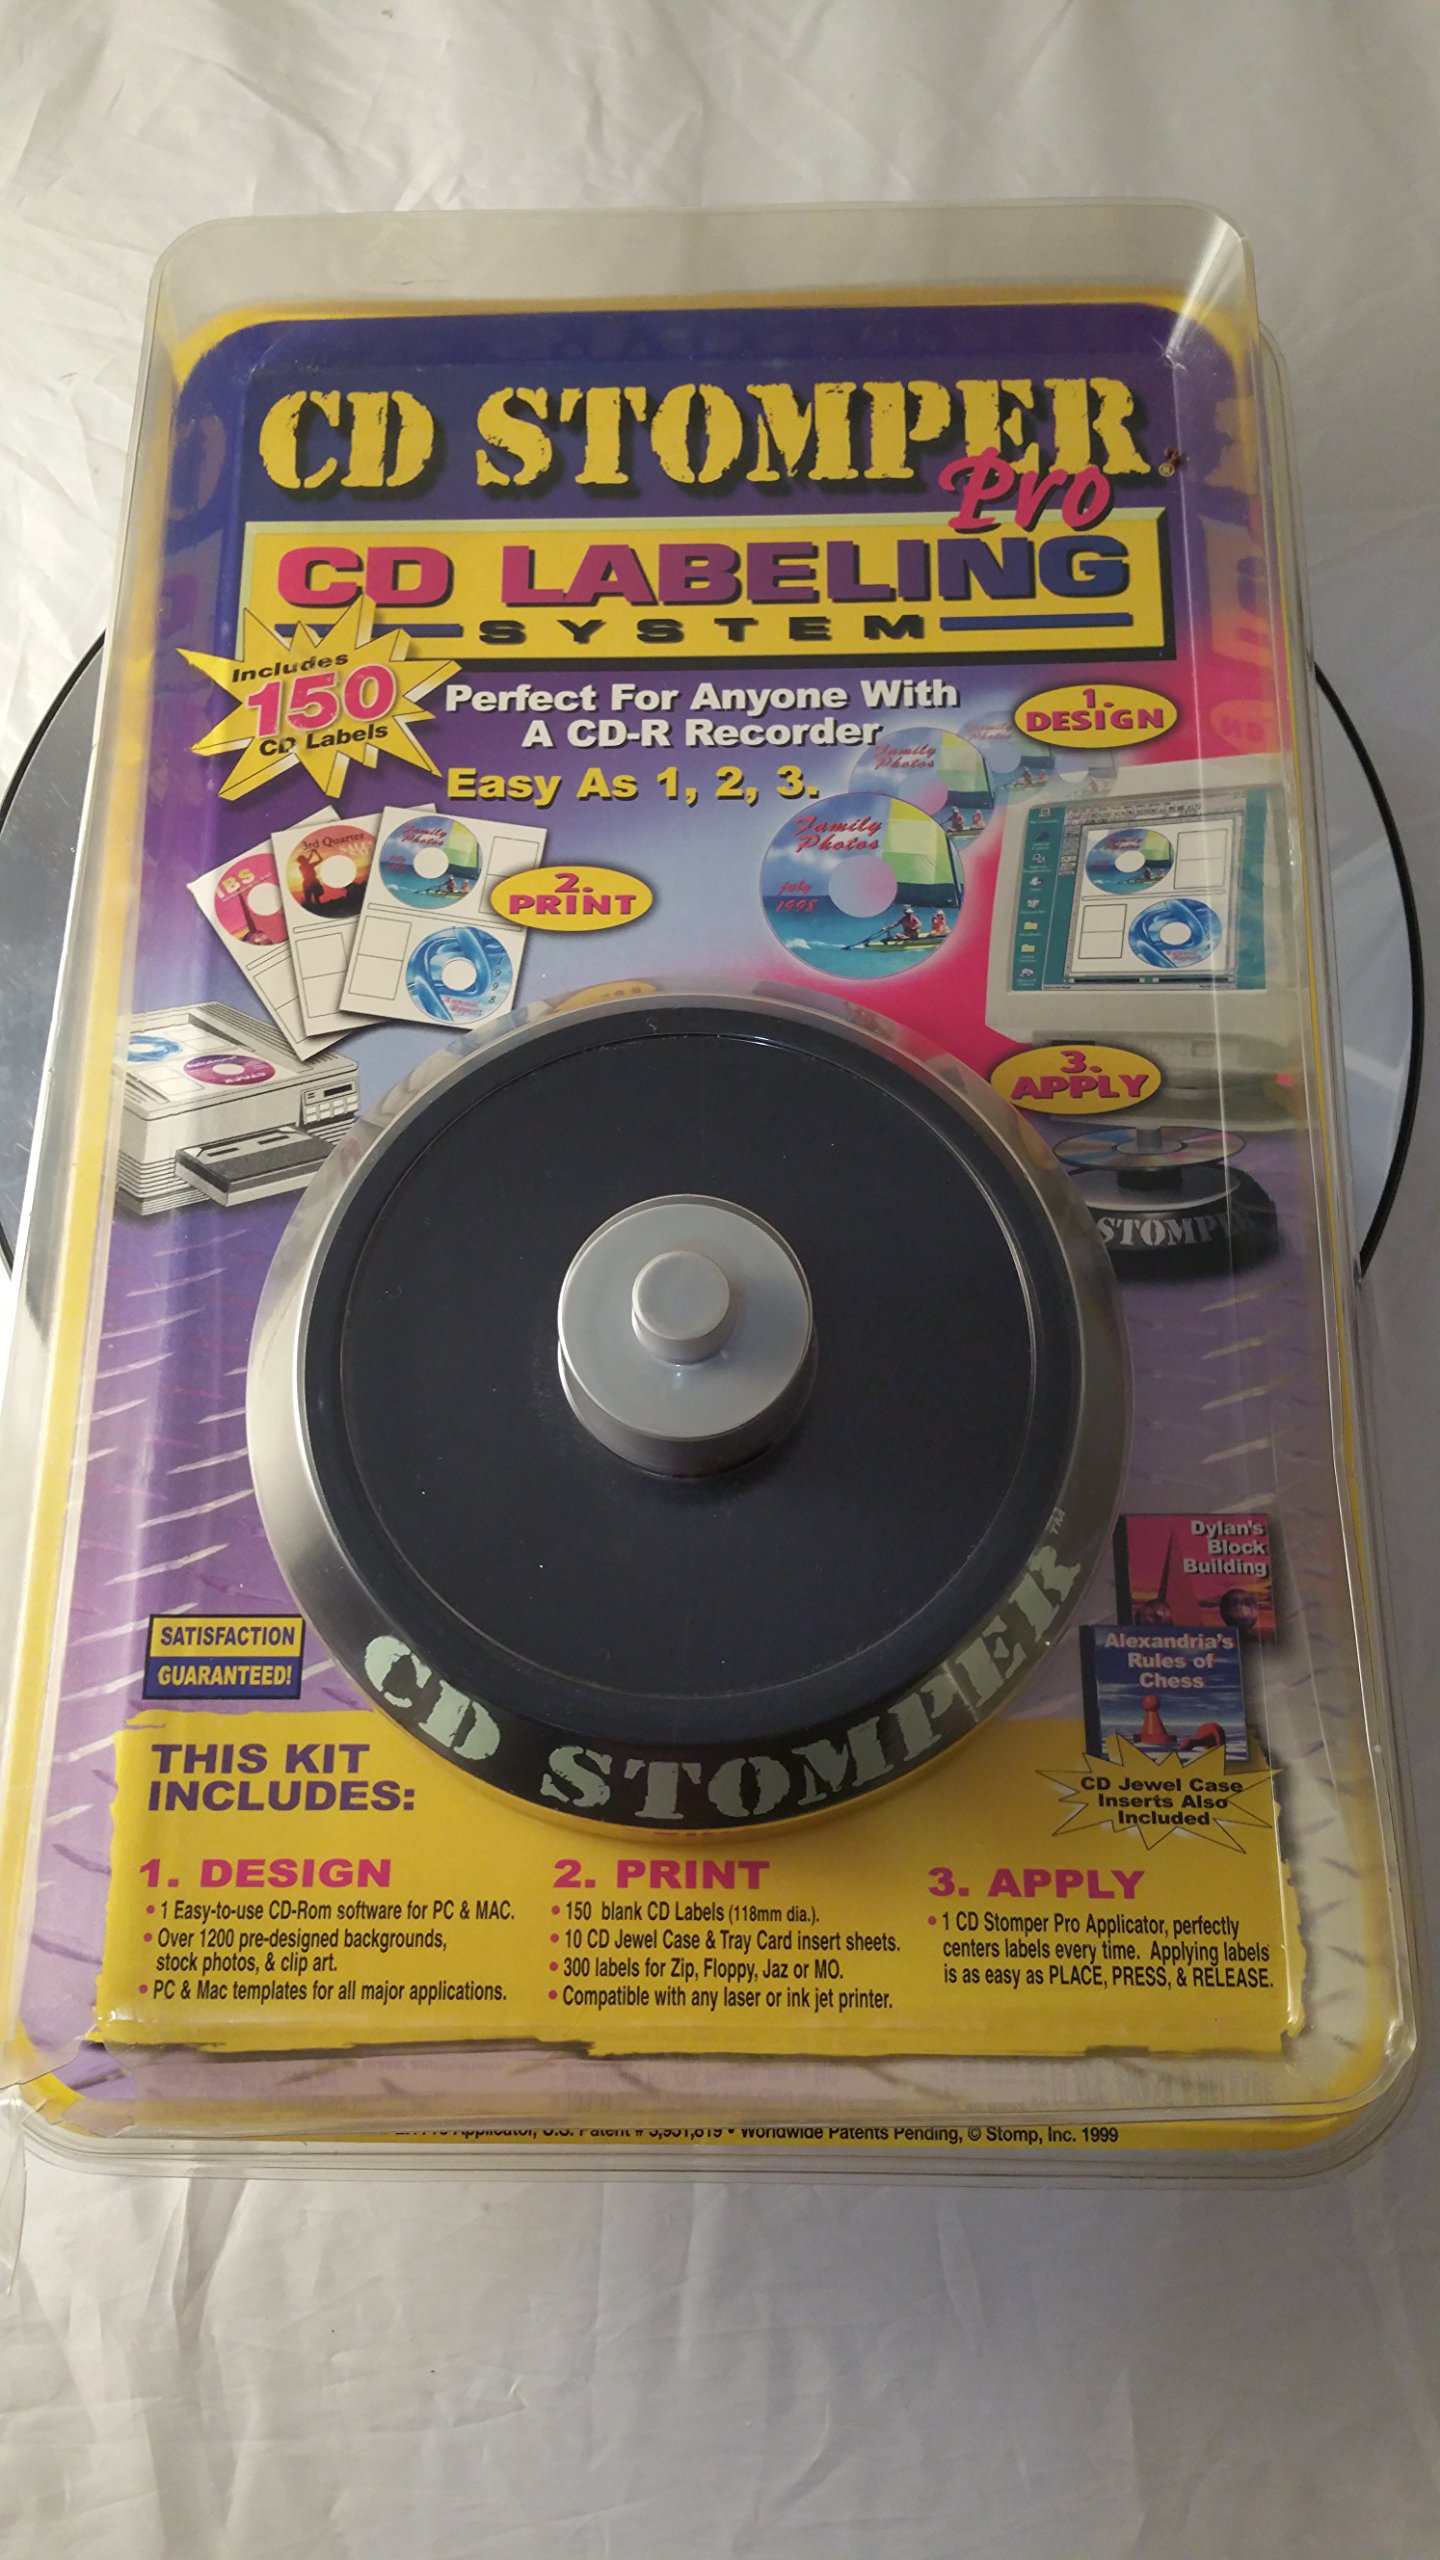 CD Stomper Pro CD Labeling System by Cd Stomper